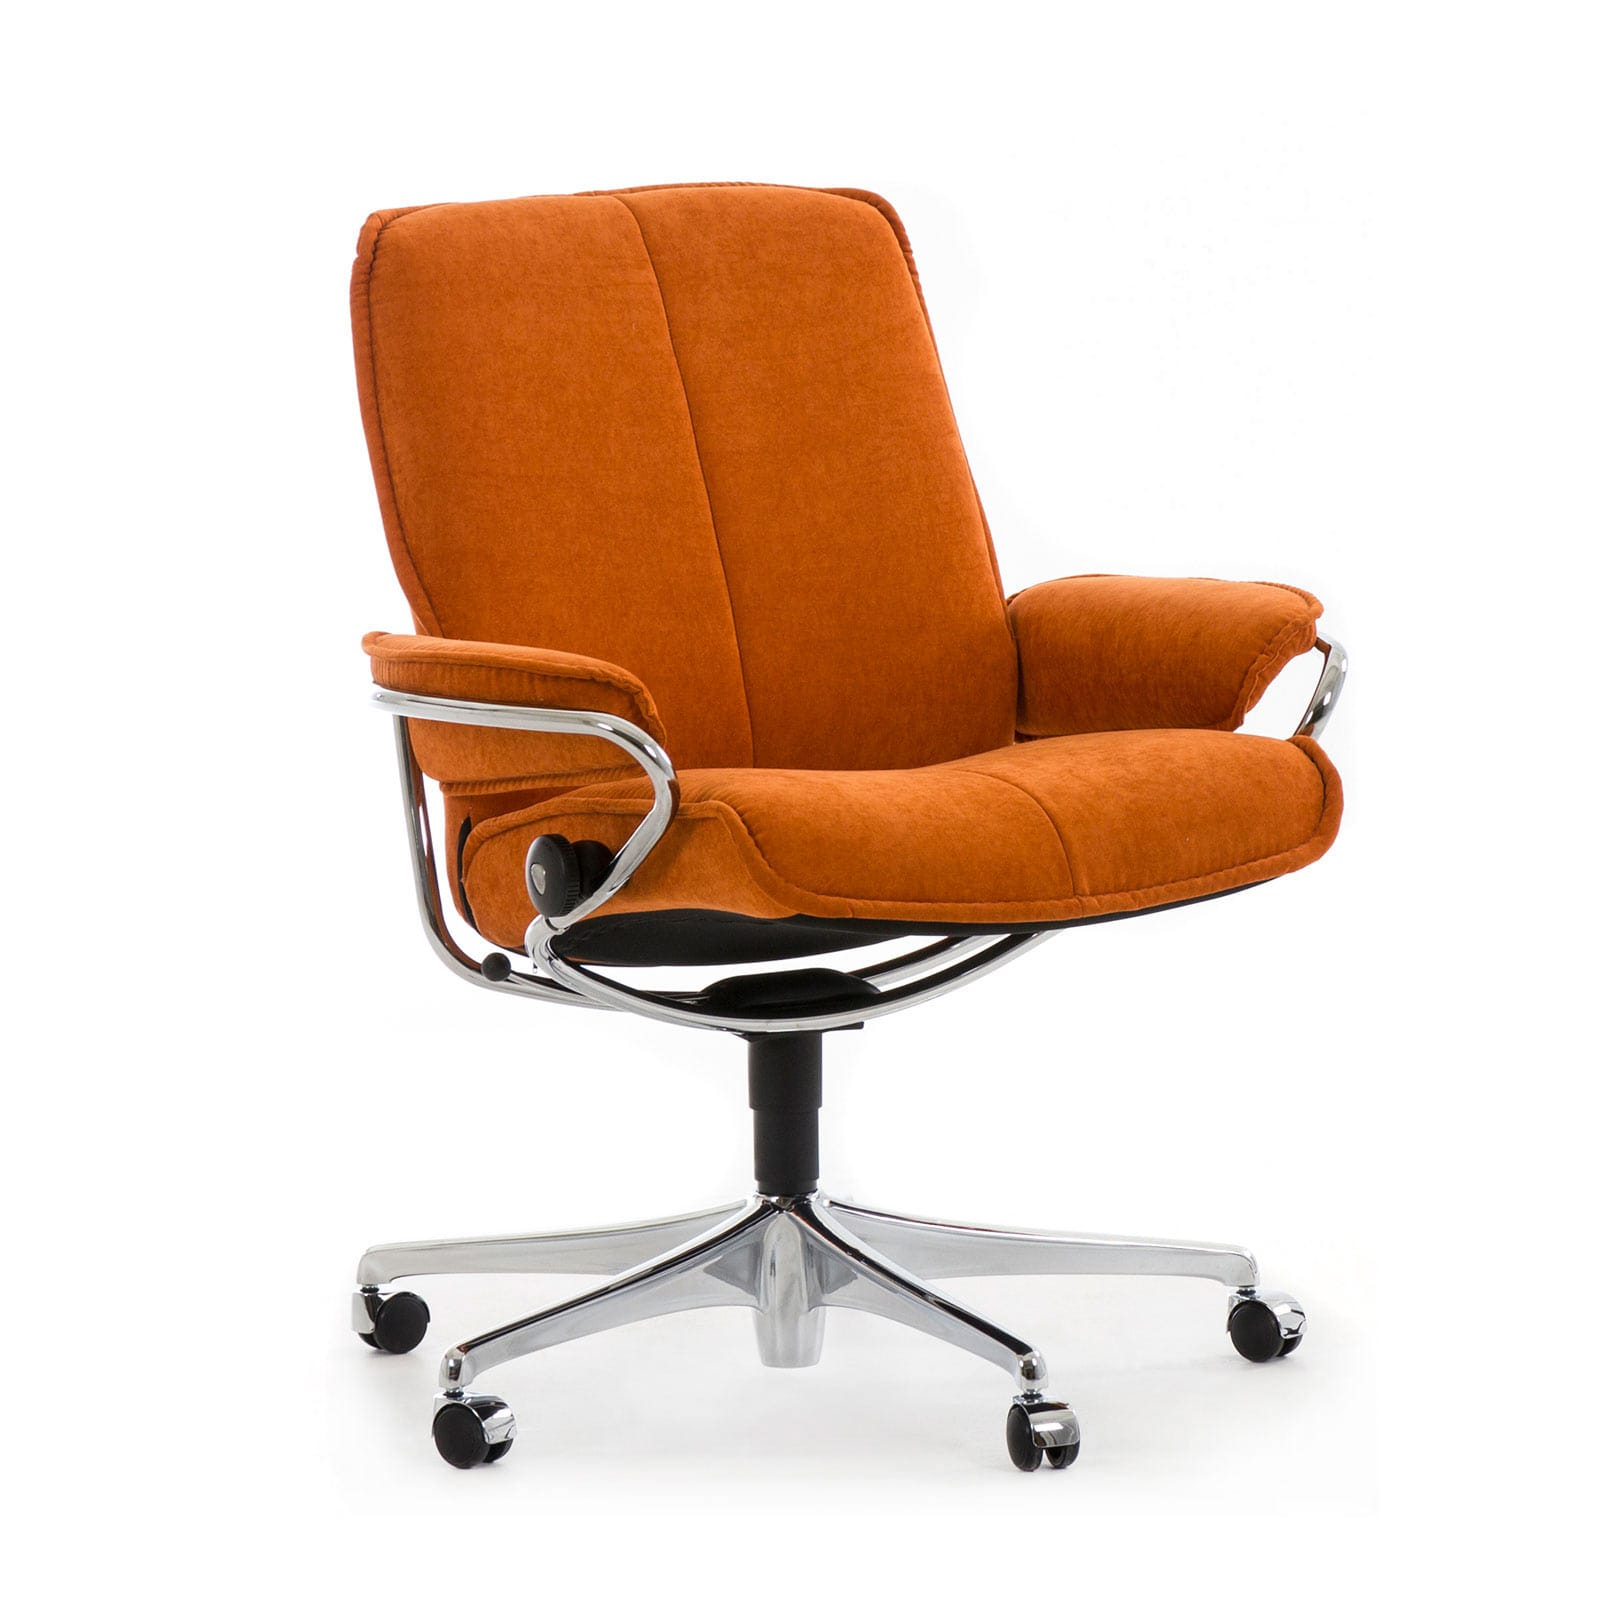 Relaxsessel Stressless City Lowback Home Office Calido Orange